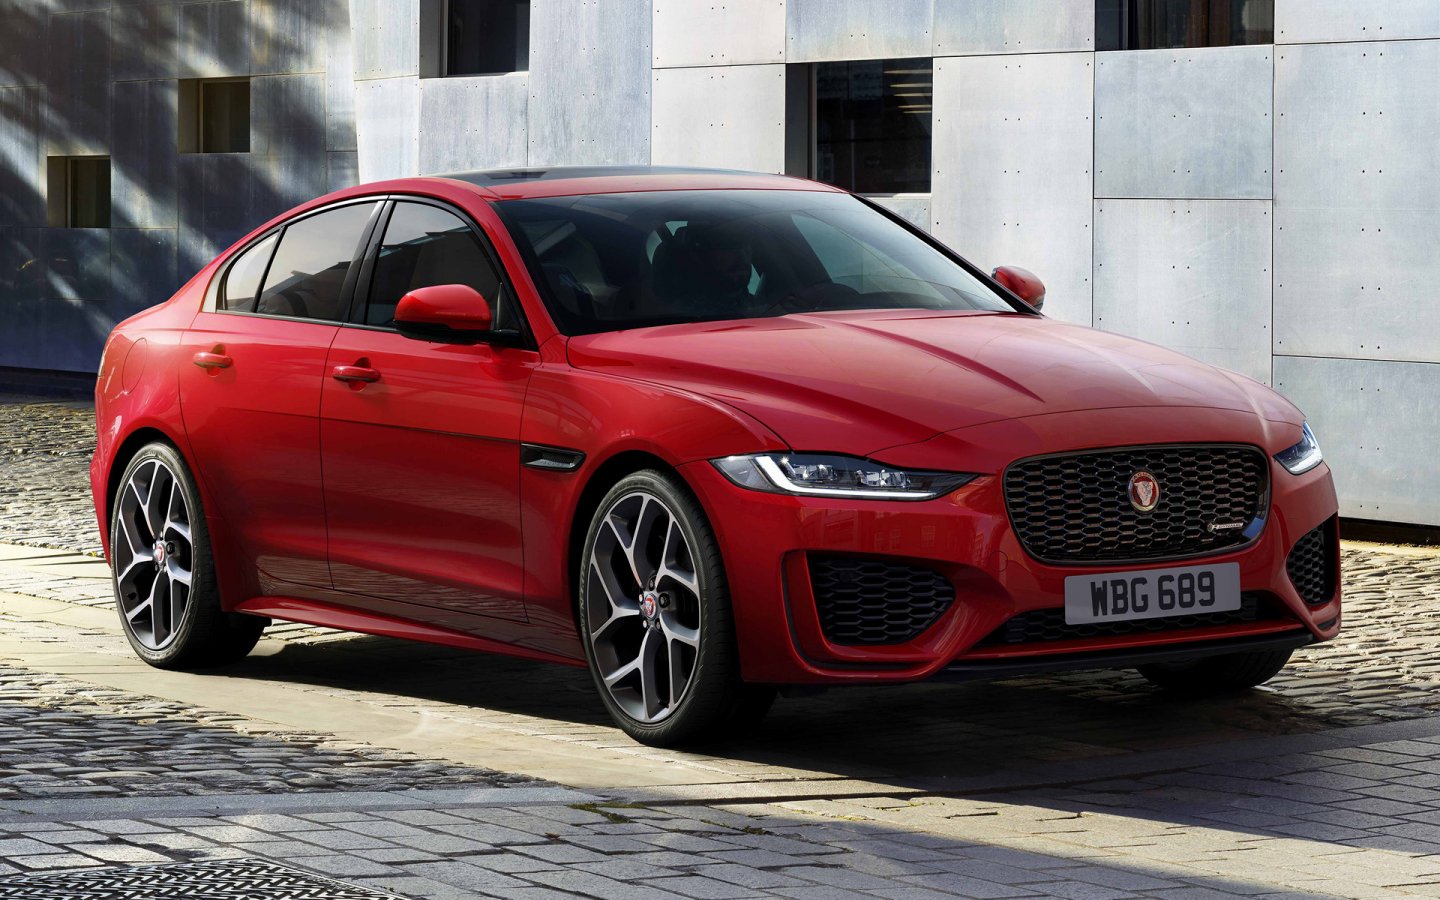 2017 Jaguar Xe 20d R Sport 0 60 Times Top Speed Specs Quarter Mile And Wallpapers Mycarspecs United States Usa